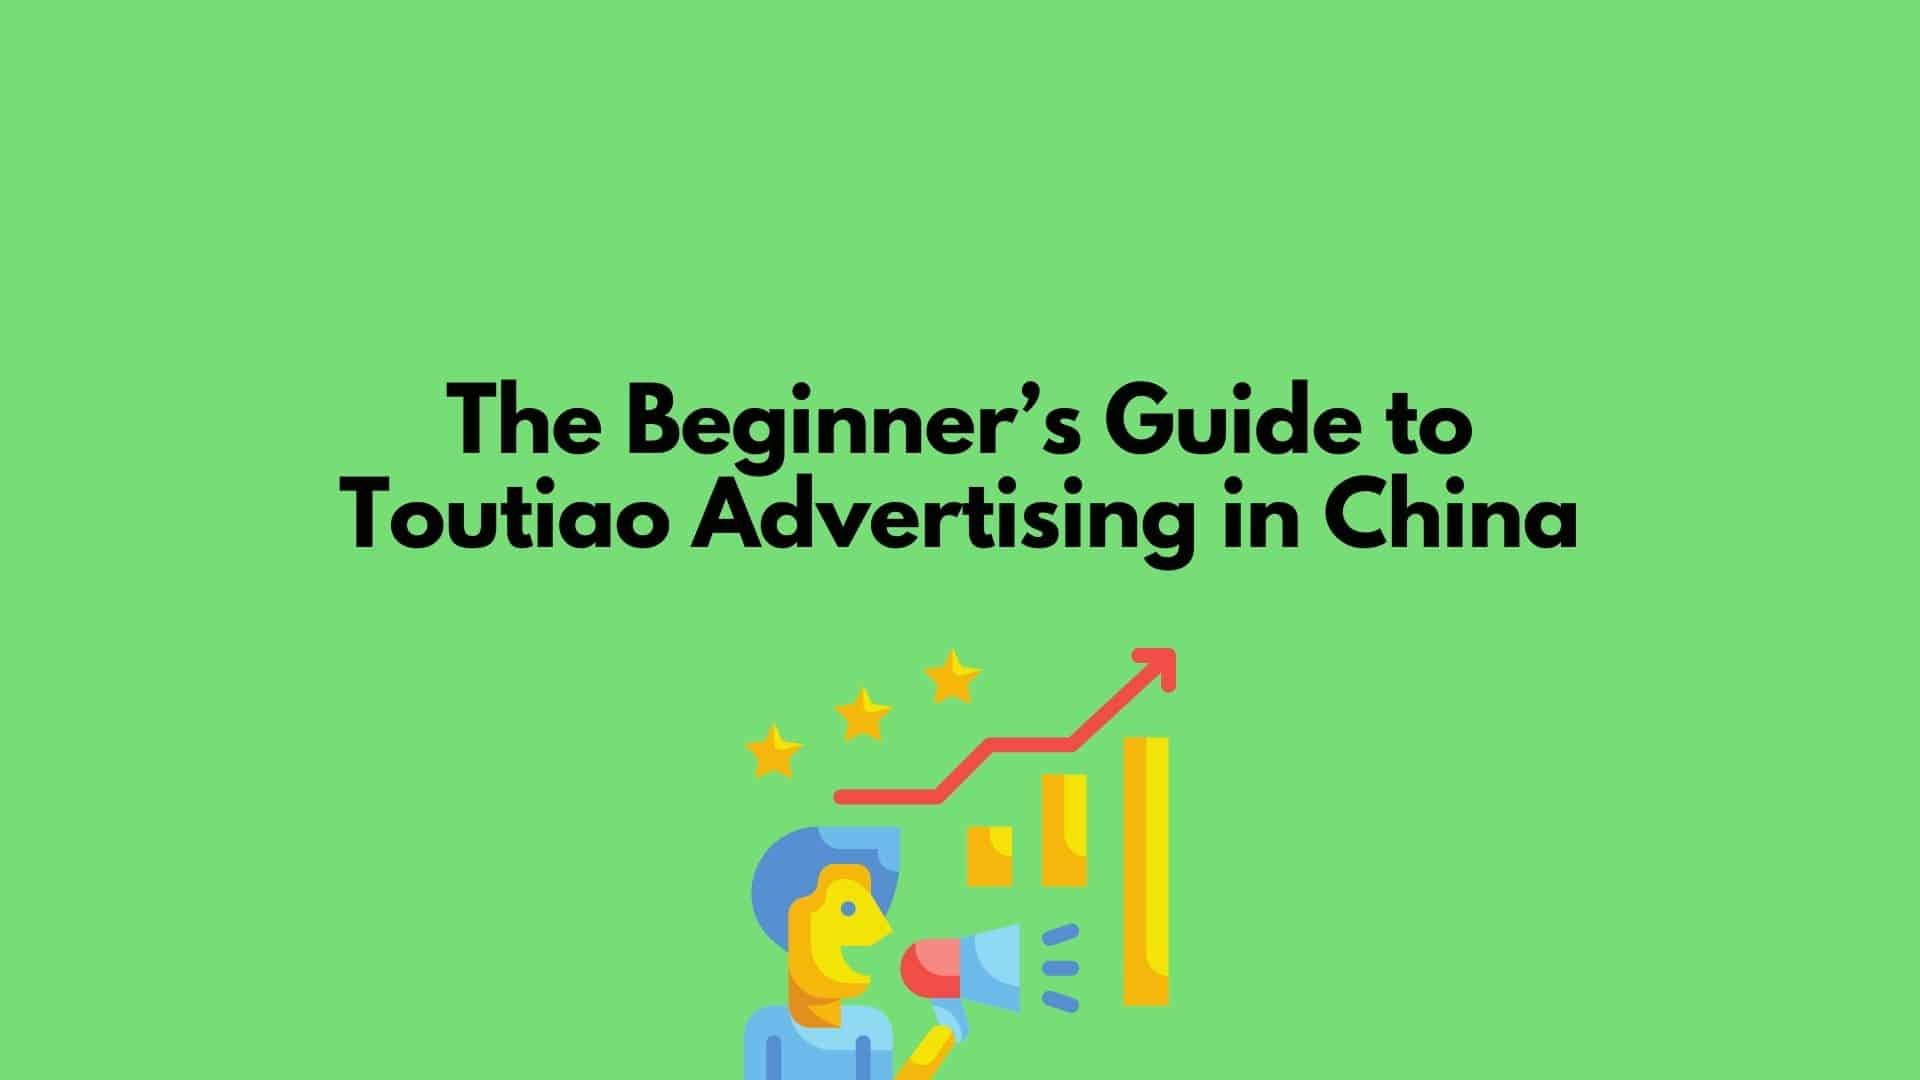 The Beginner's Guide to Toutiao Advertising in China